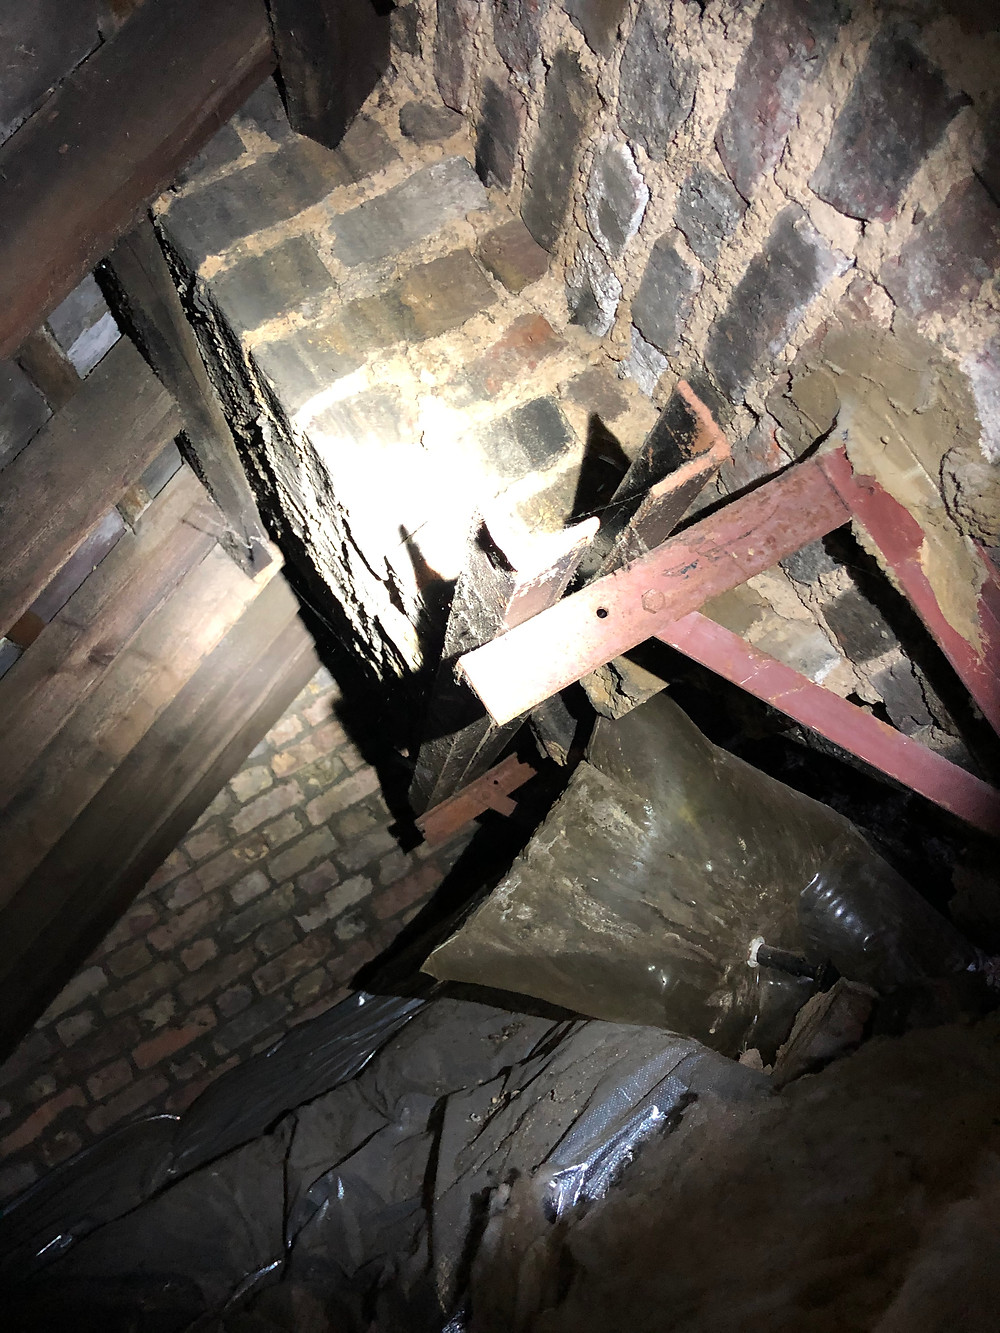 A old chimney stack supported via a gallows bracket within the loft space.